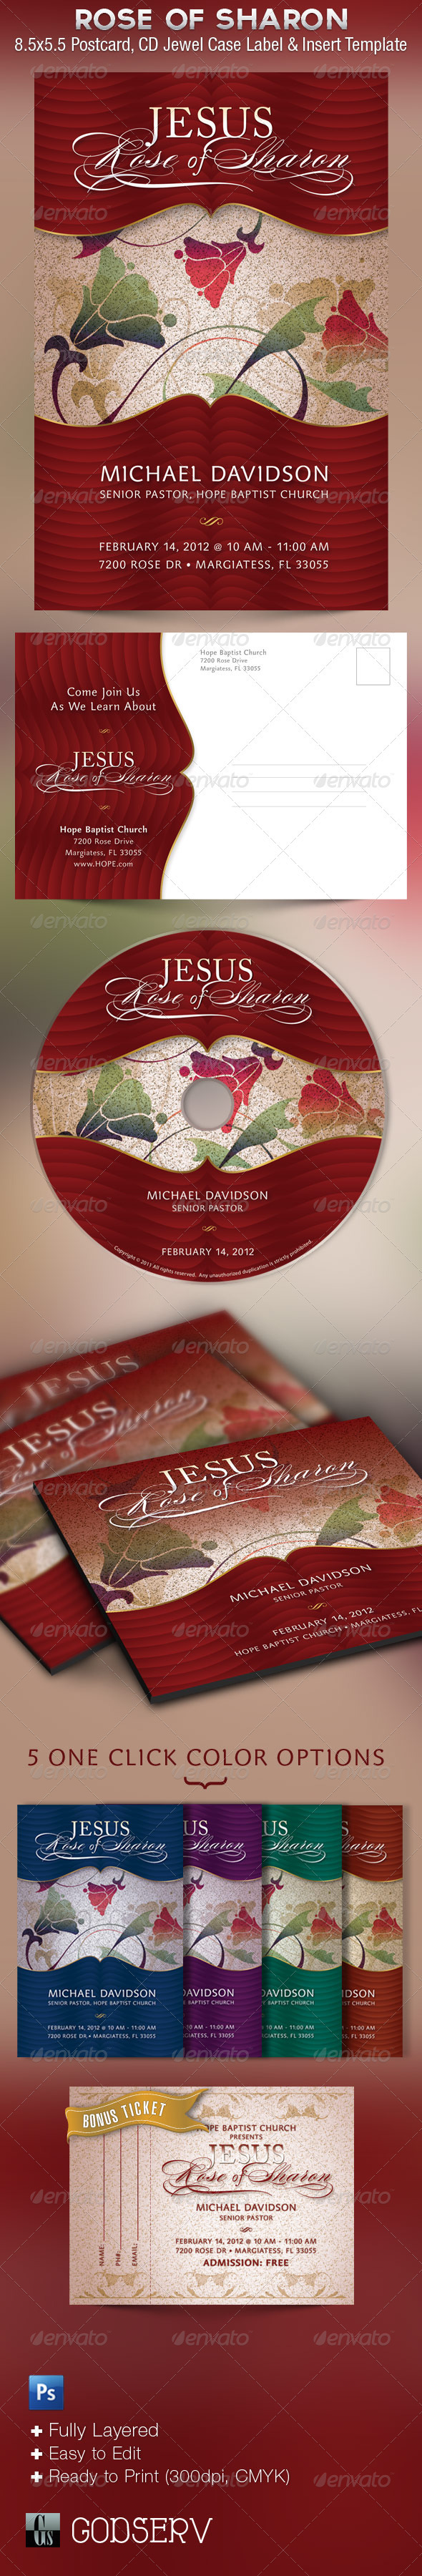 Rose of Sharon Sermon Postcard and CD Template - Church Flyers